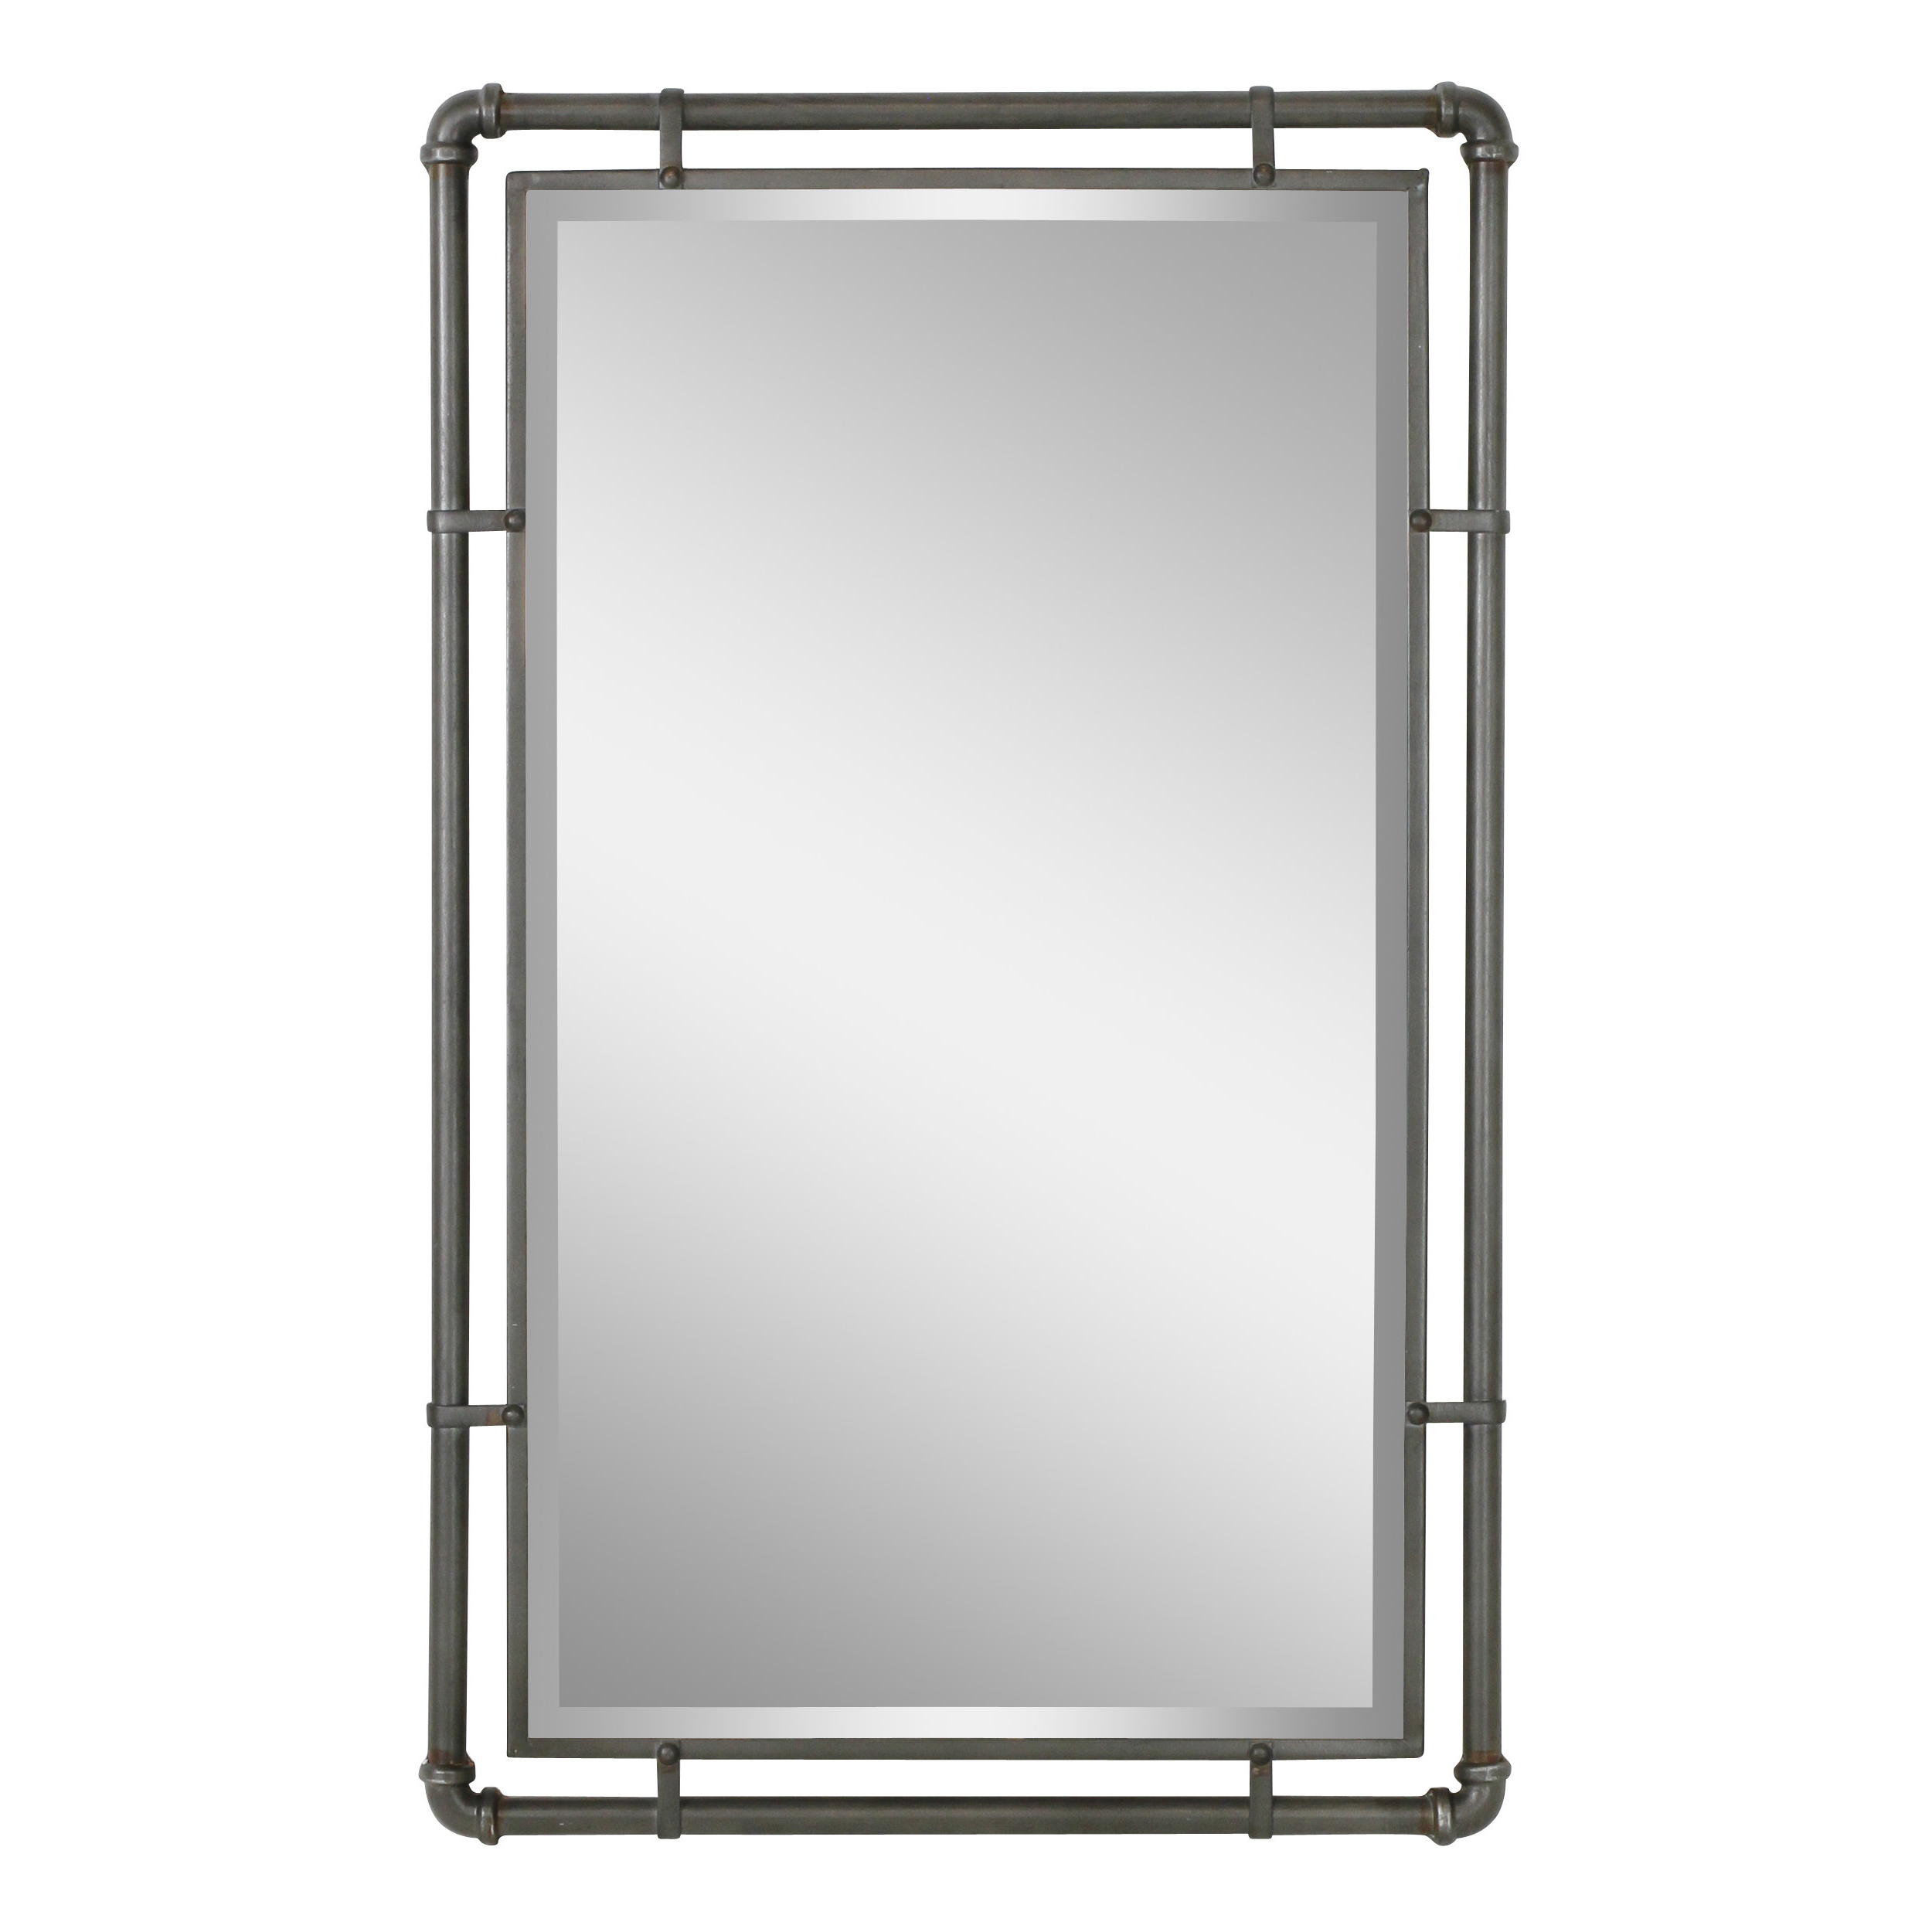 Koeller Industrial Metal Wall Mirror In Well Known Metal Wall Mirrors (Gallery 12 of 20)